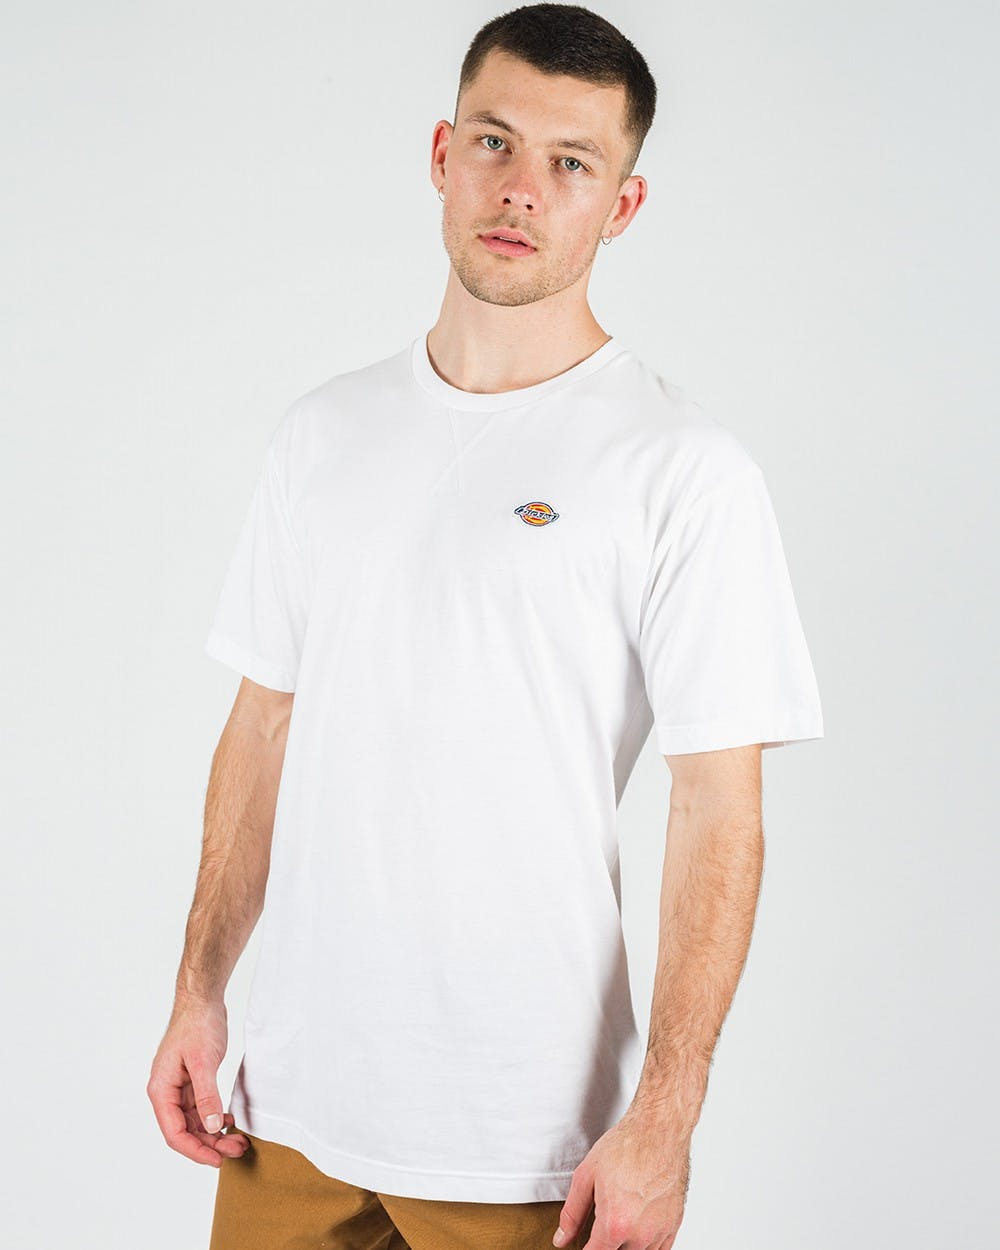 H.S ROCKWOOD CLASSIC FIT S/S TEE - WHITE